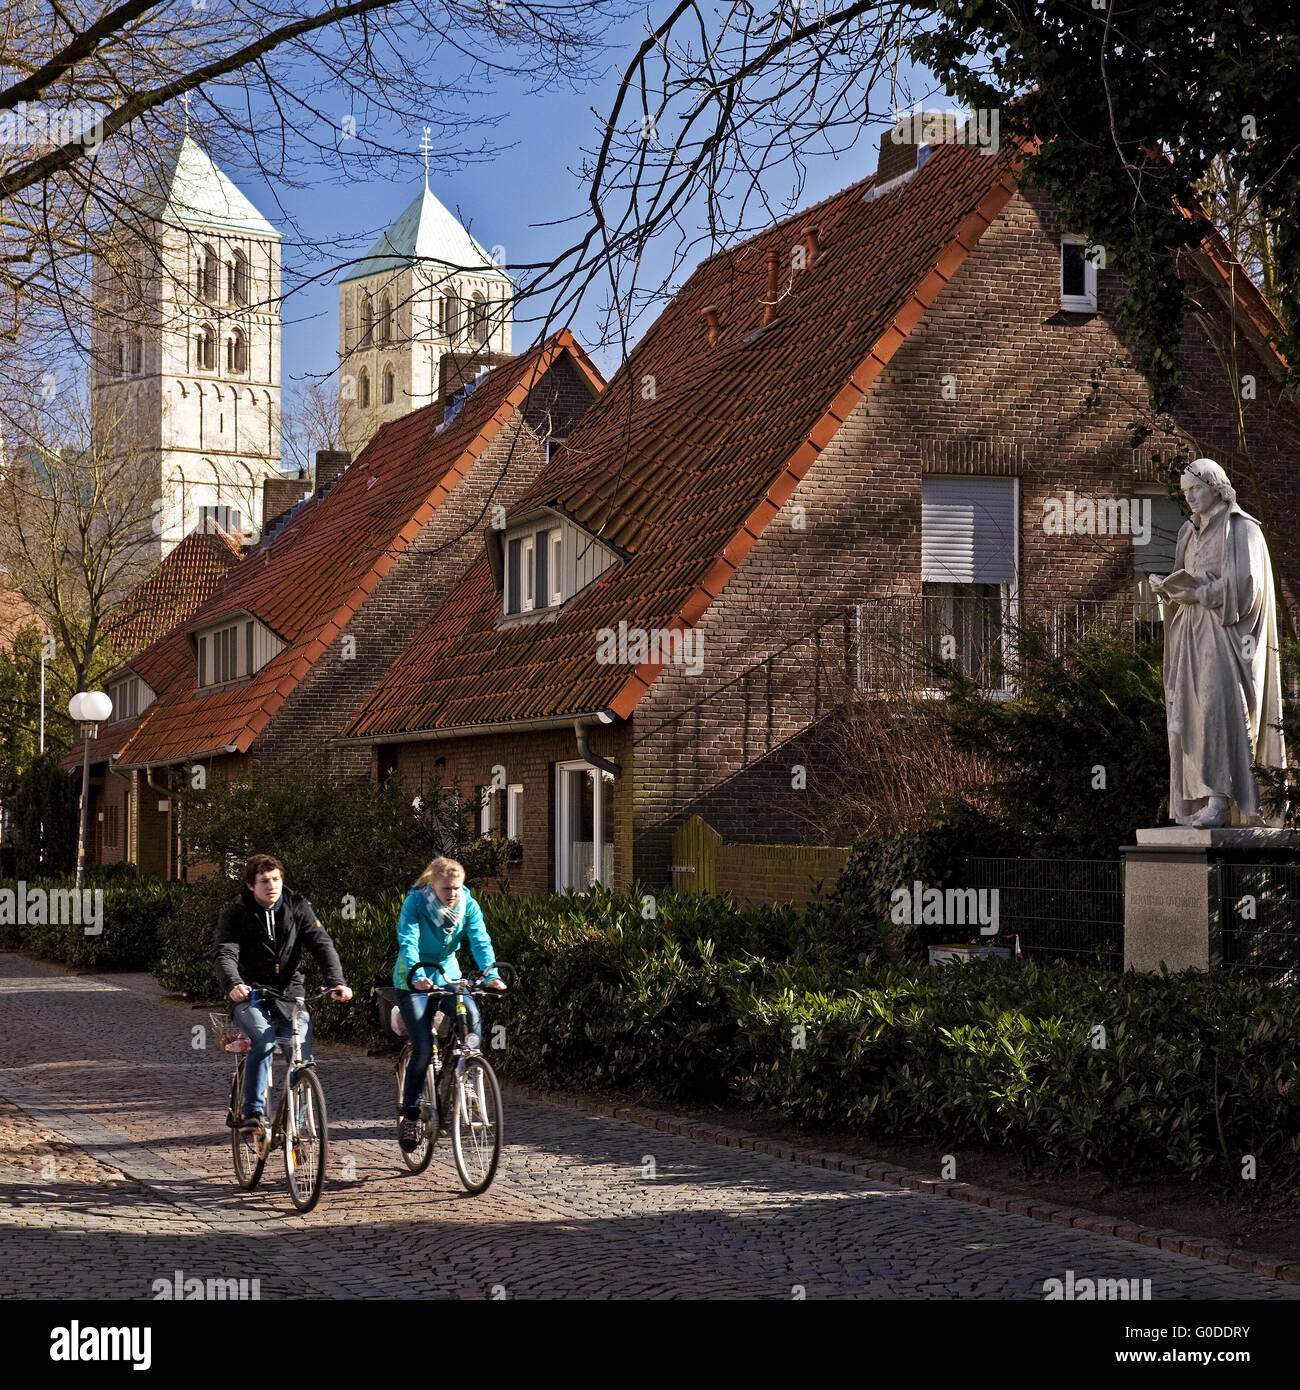 Cyclists with the St - Paul's Cathedral, Muenster - Stock Image